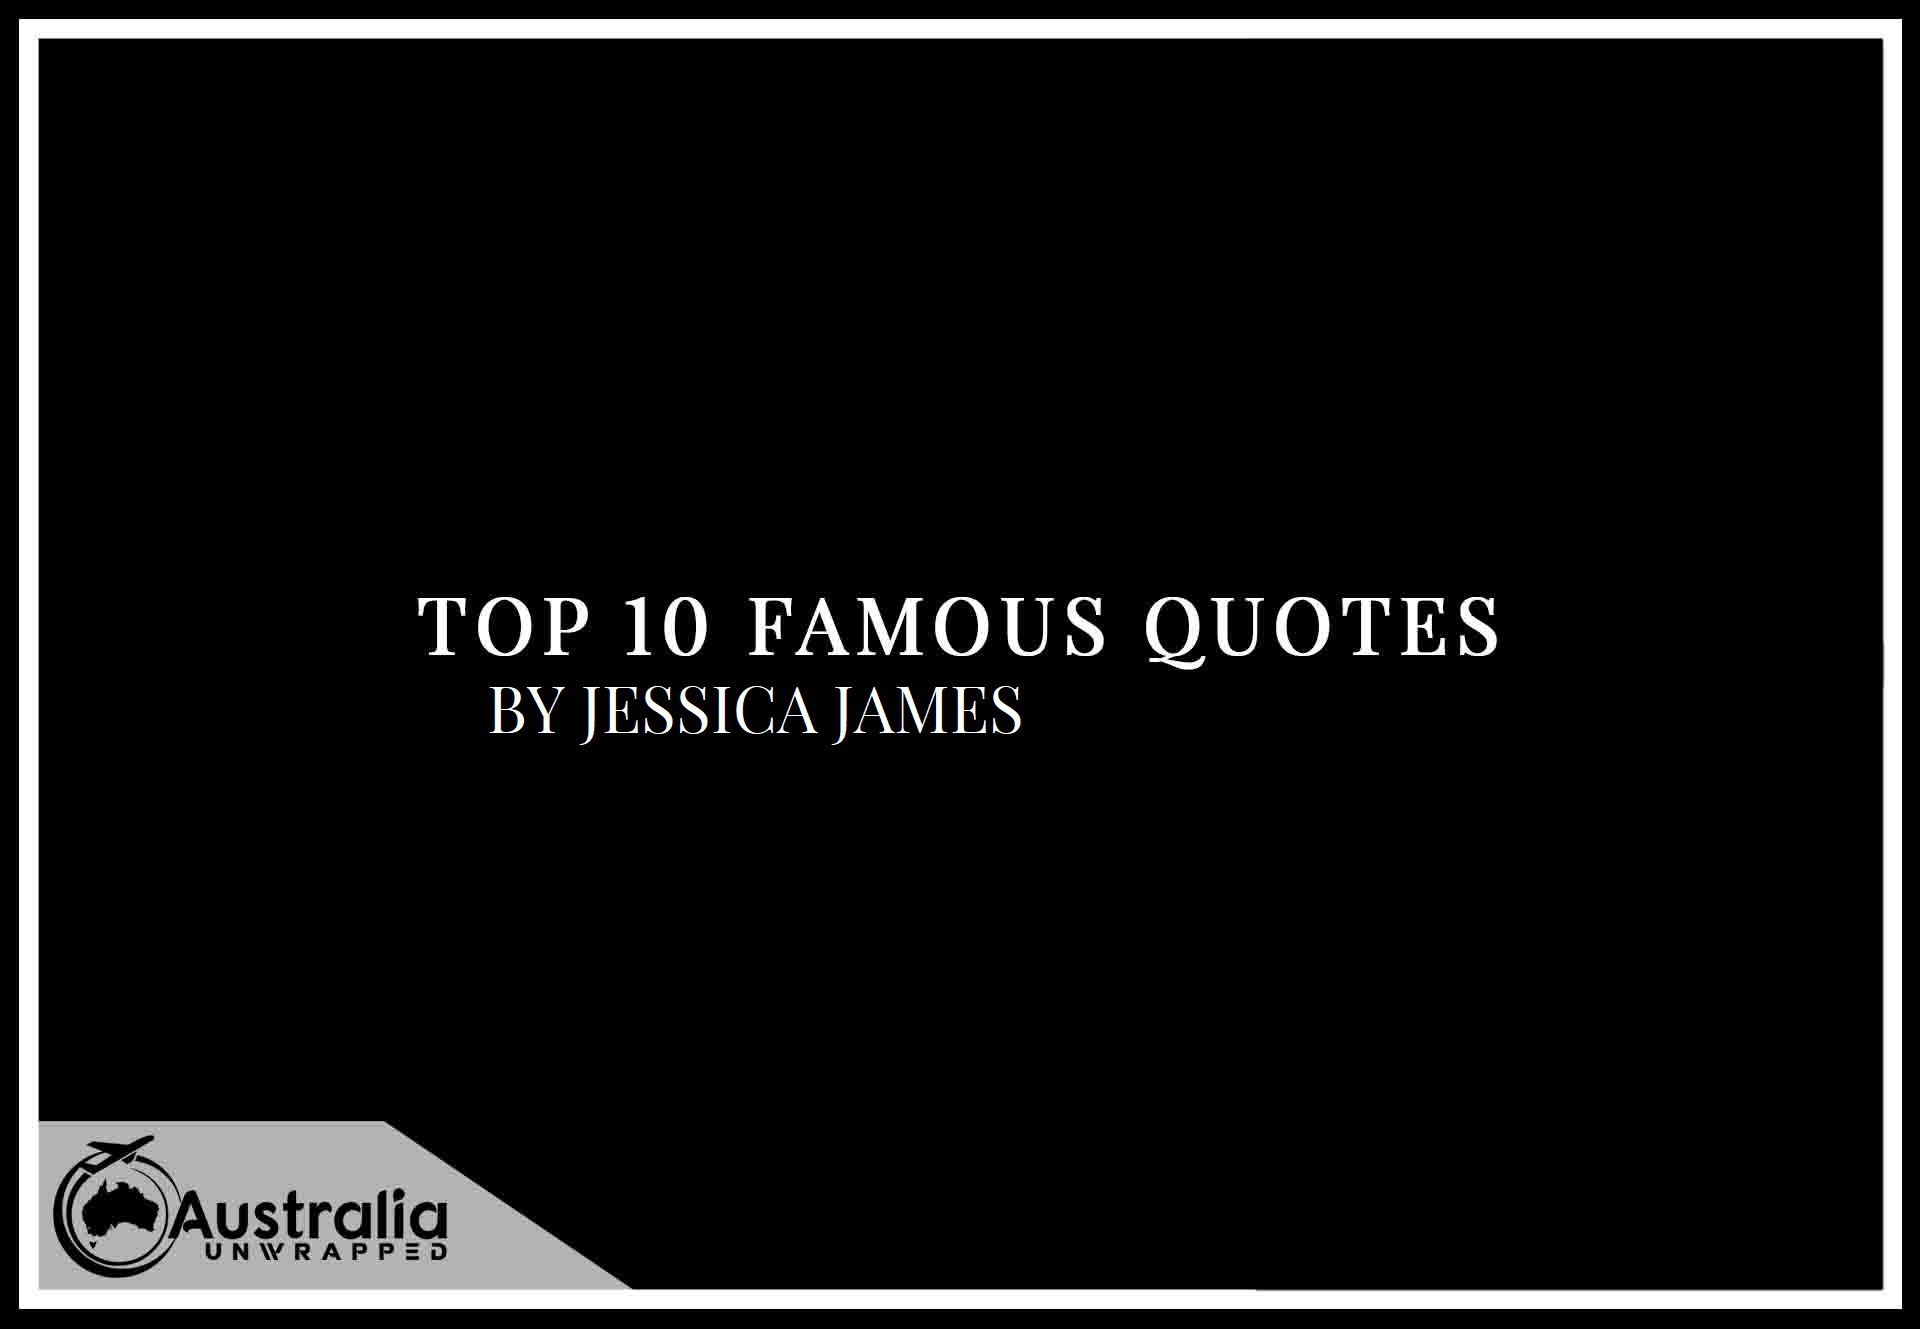 Top 10 Famous Quotes by Author Jessica James